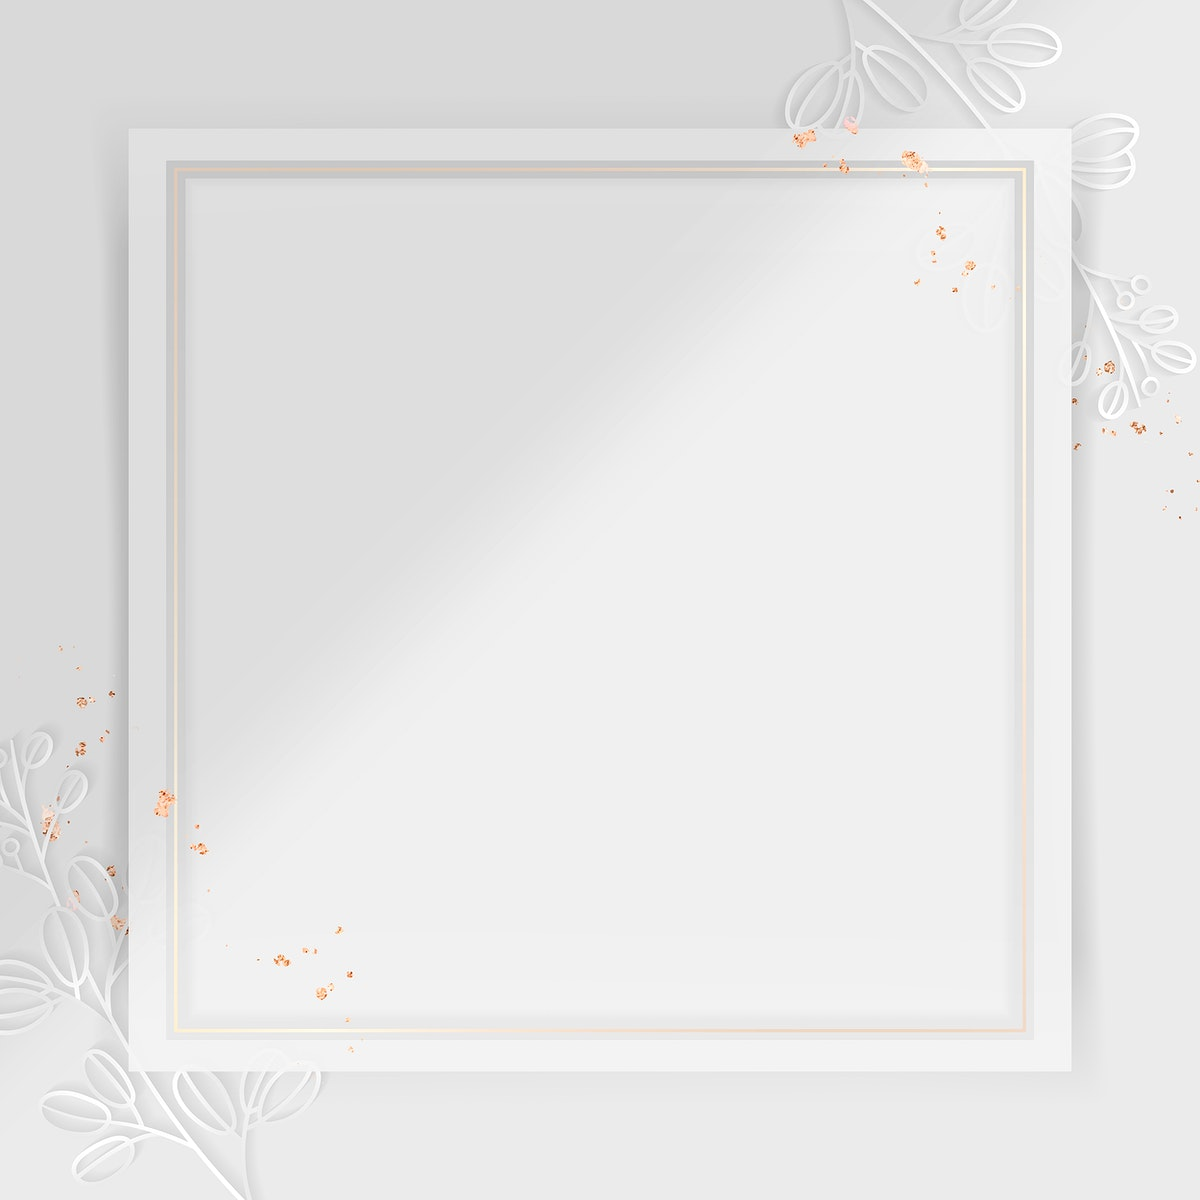 Square frame on silver floral pattern background vector